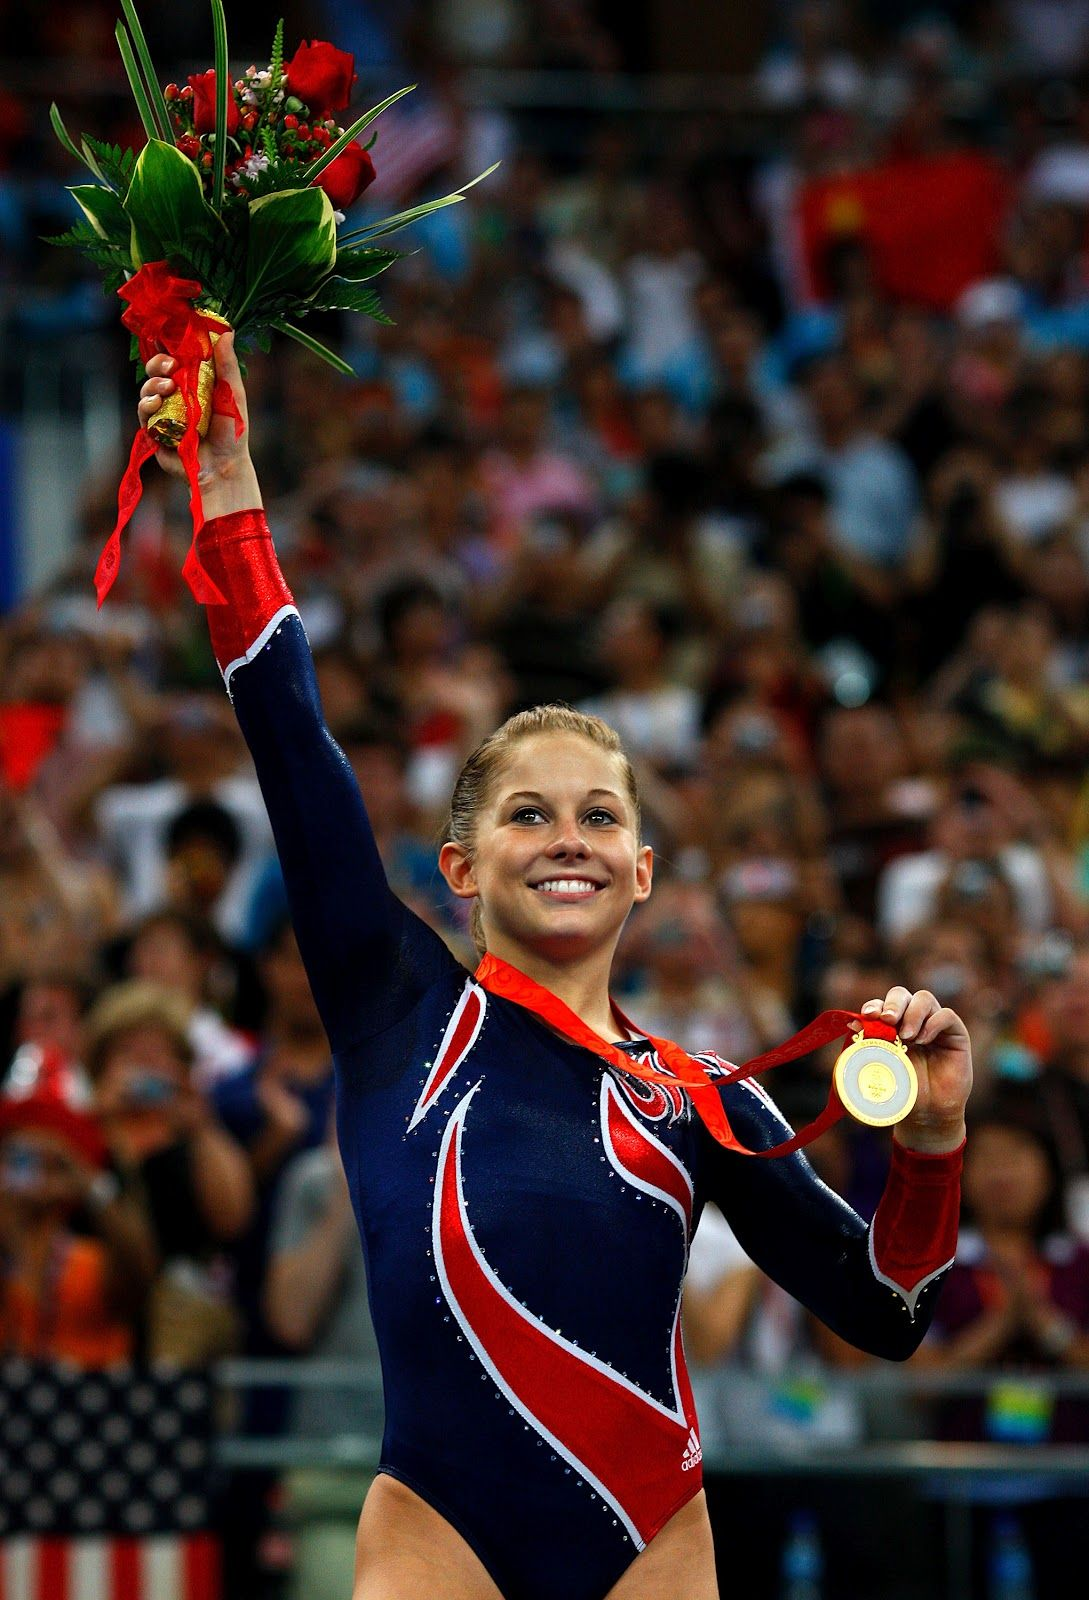 Shawn Johnson 4 Olympic medals in gymnastics